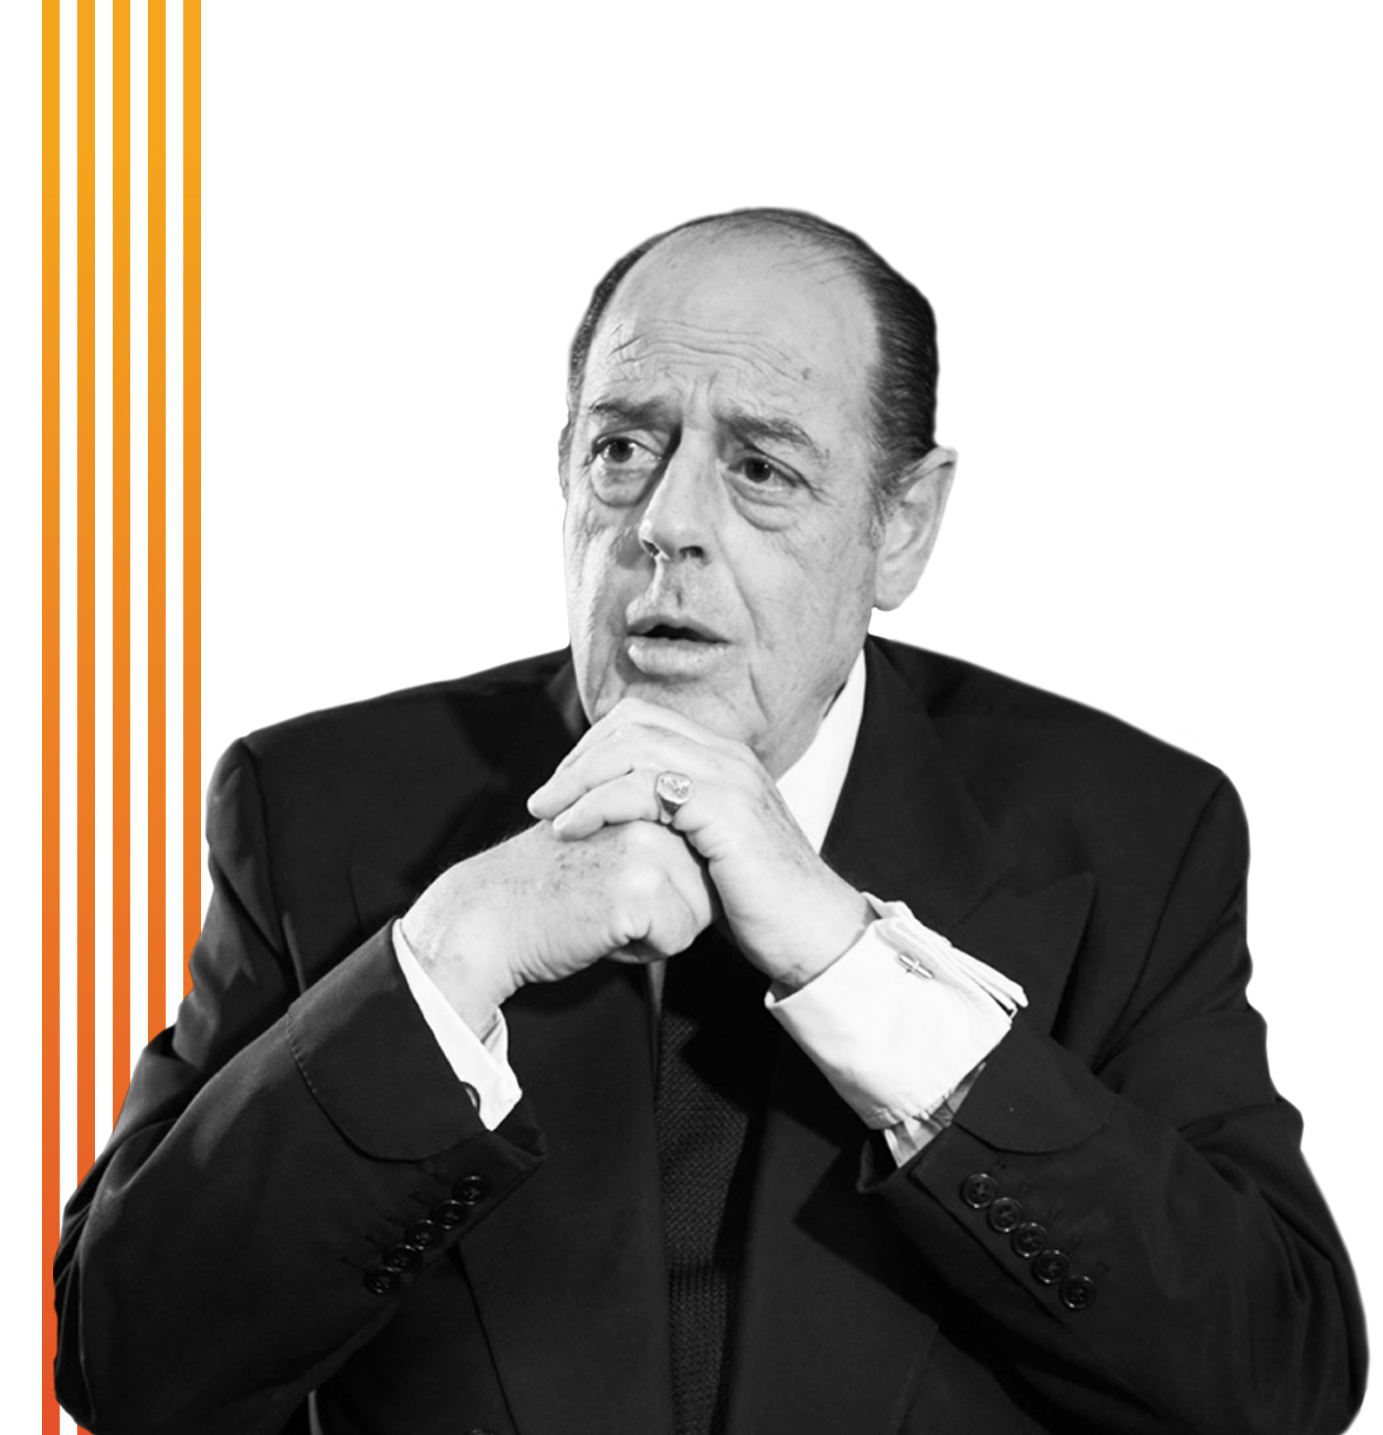 Sir Nicholas Soames conduit foundation - ensuring a fairer and more just society for all